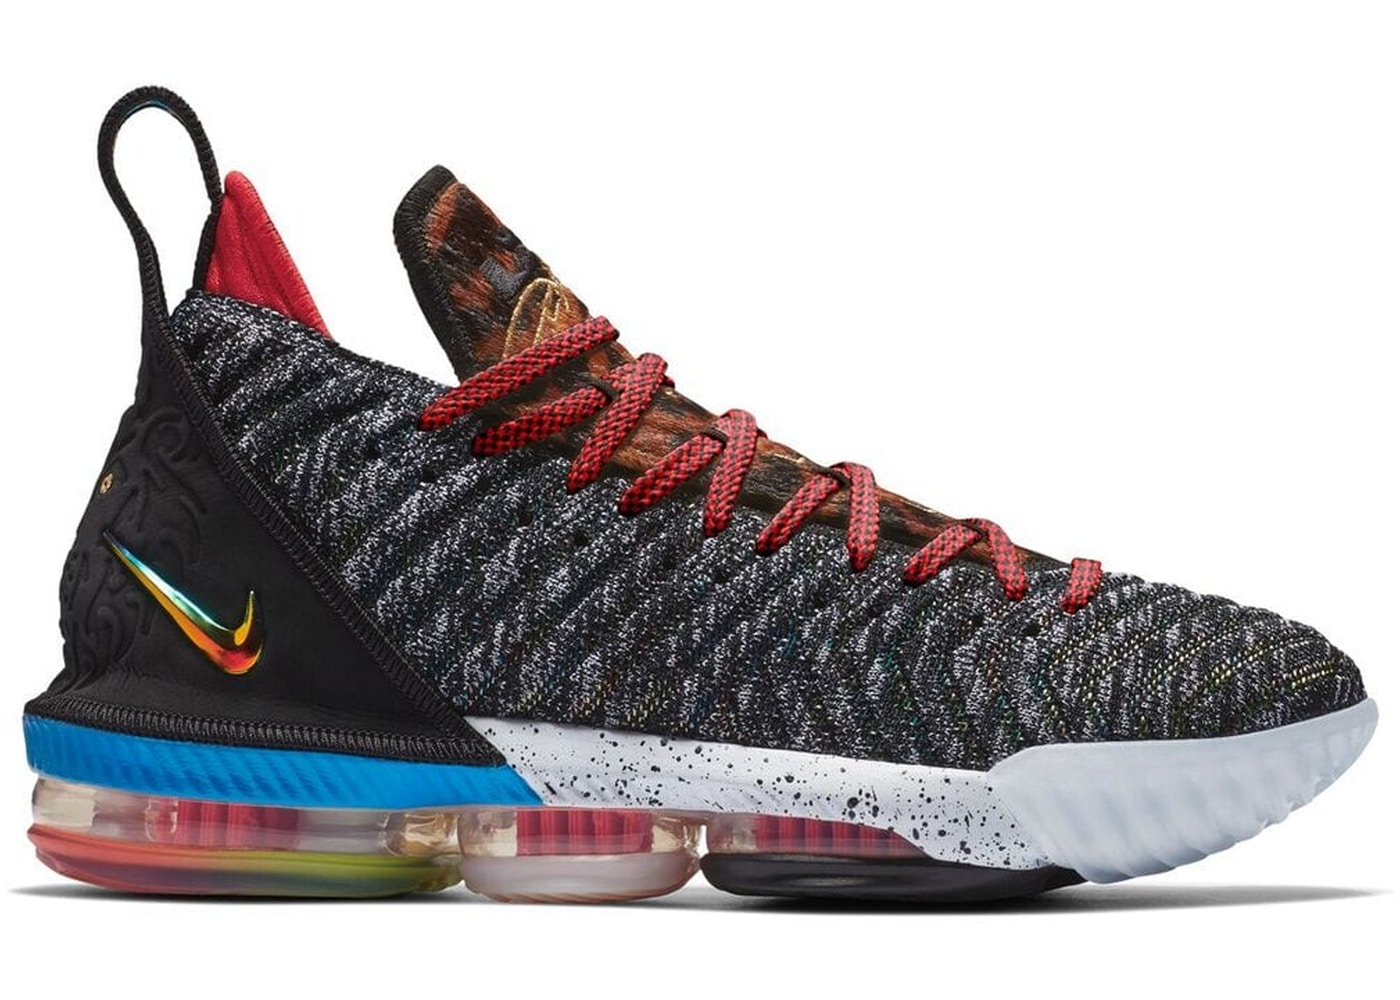 Buy LeBron Shoes   Deadstock Sneakers 6b4b307d1